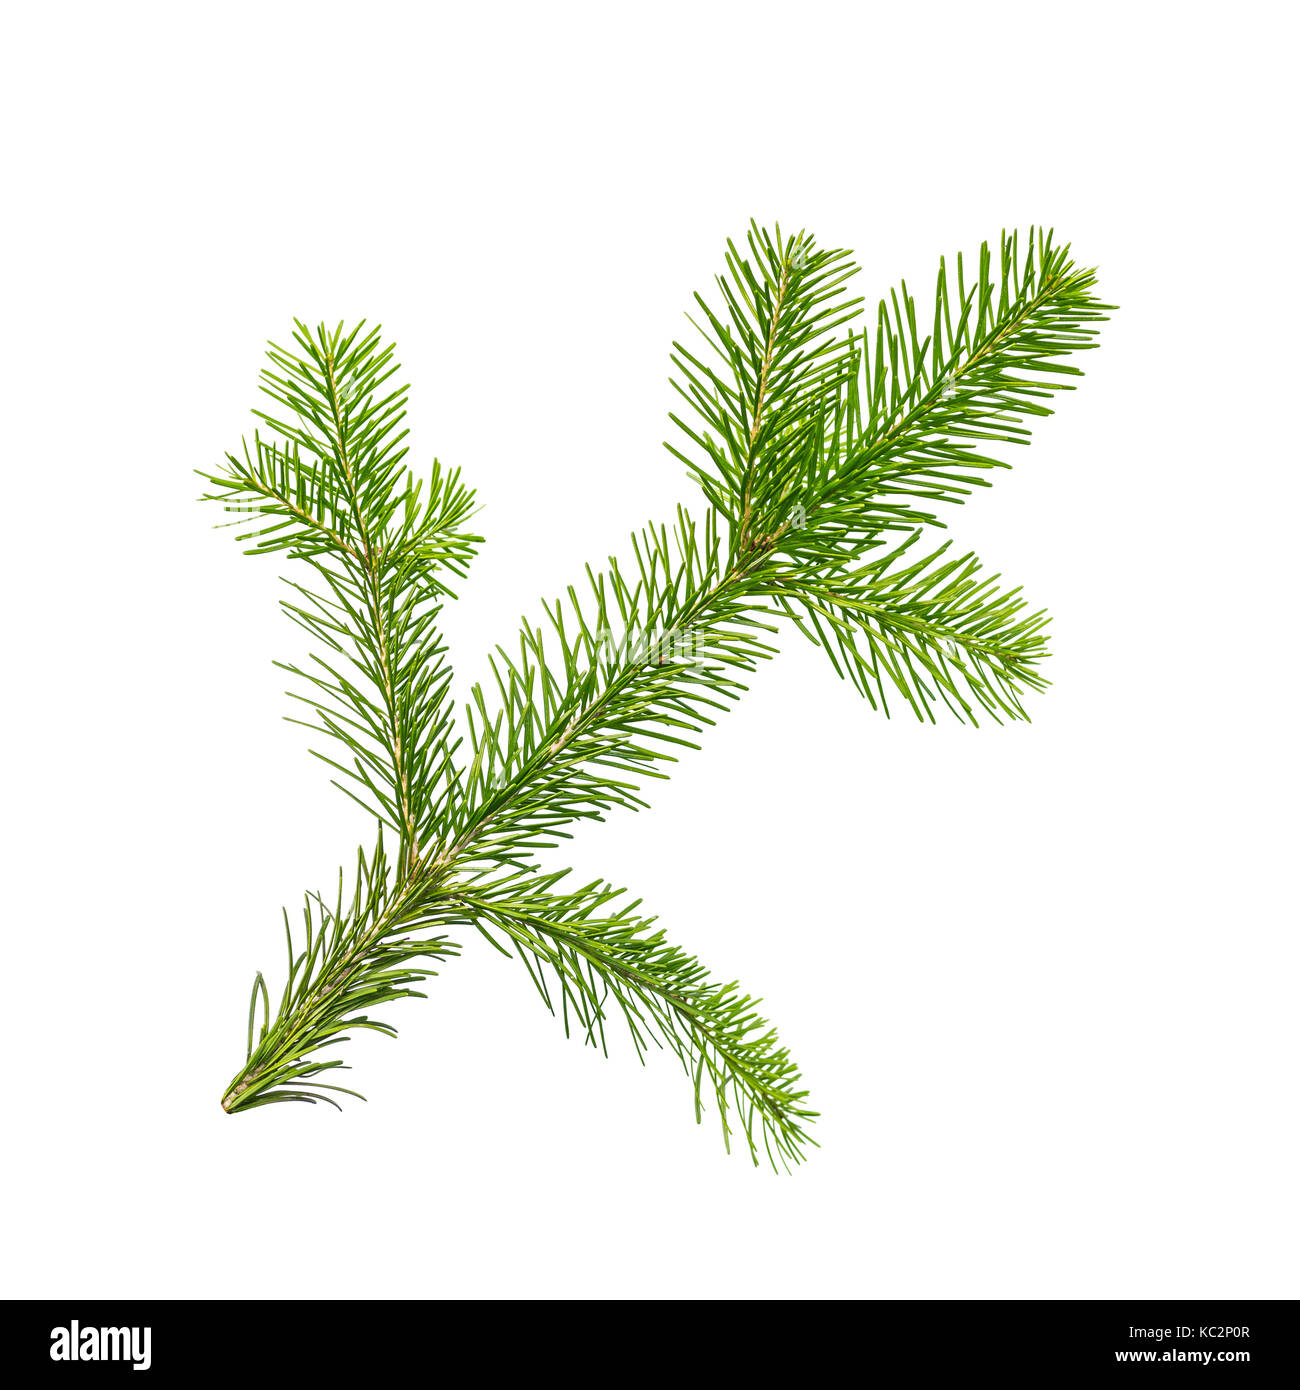 Fir or Spruce Branch Isolated on White - Stock Image